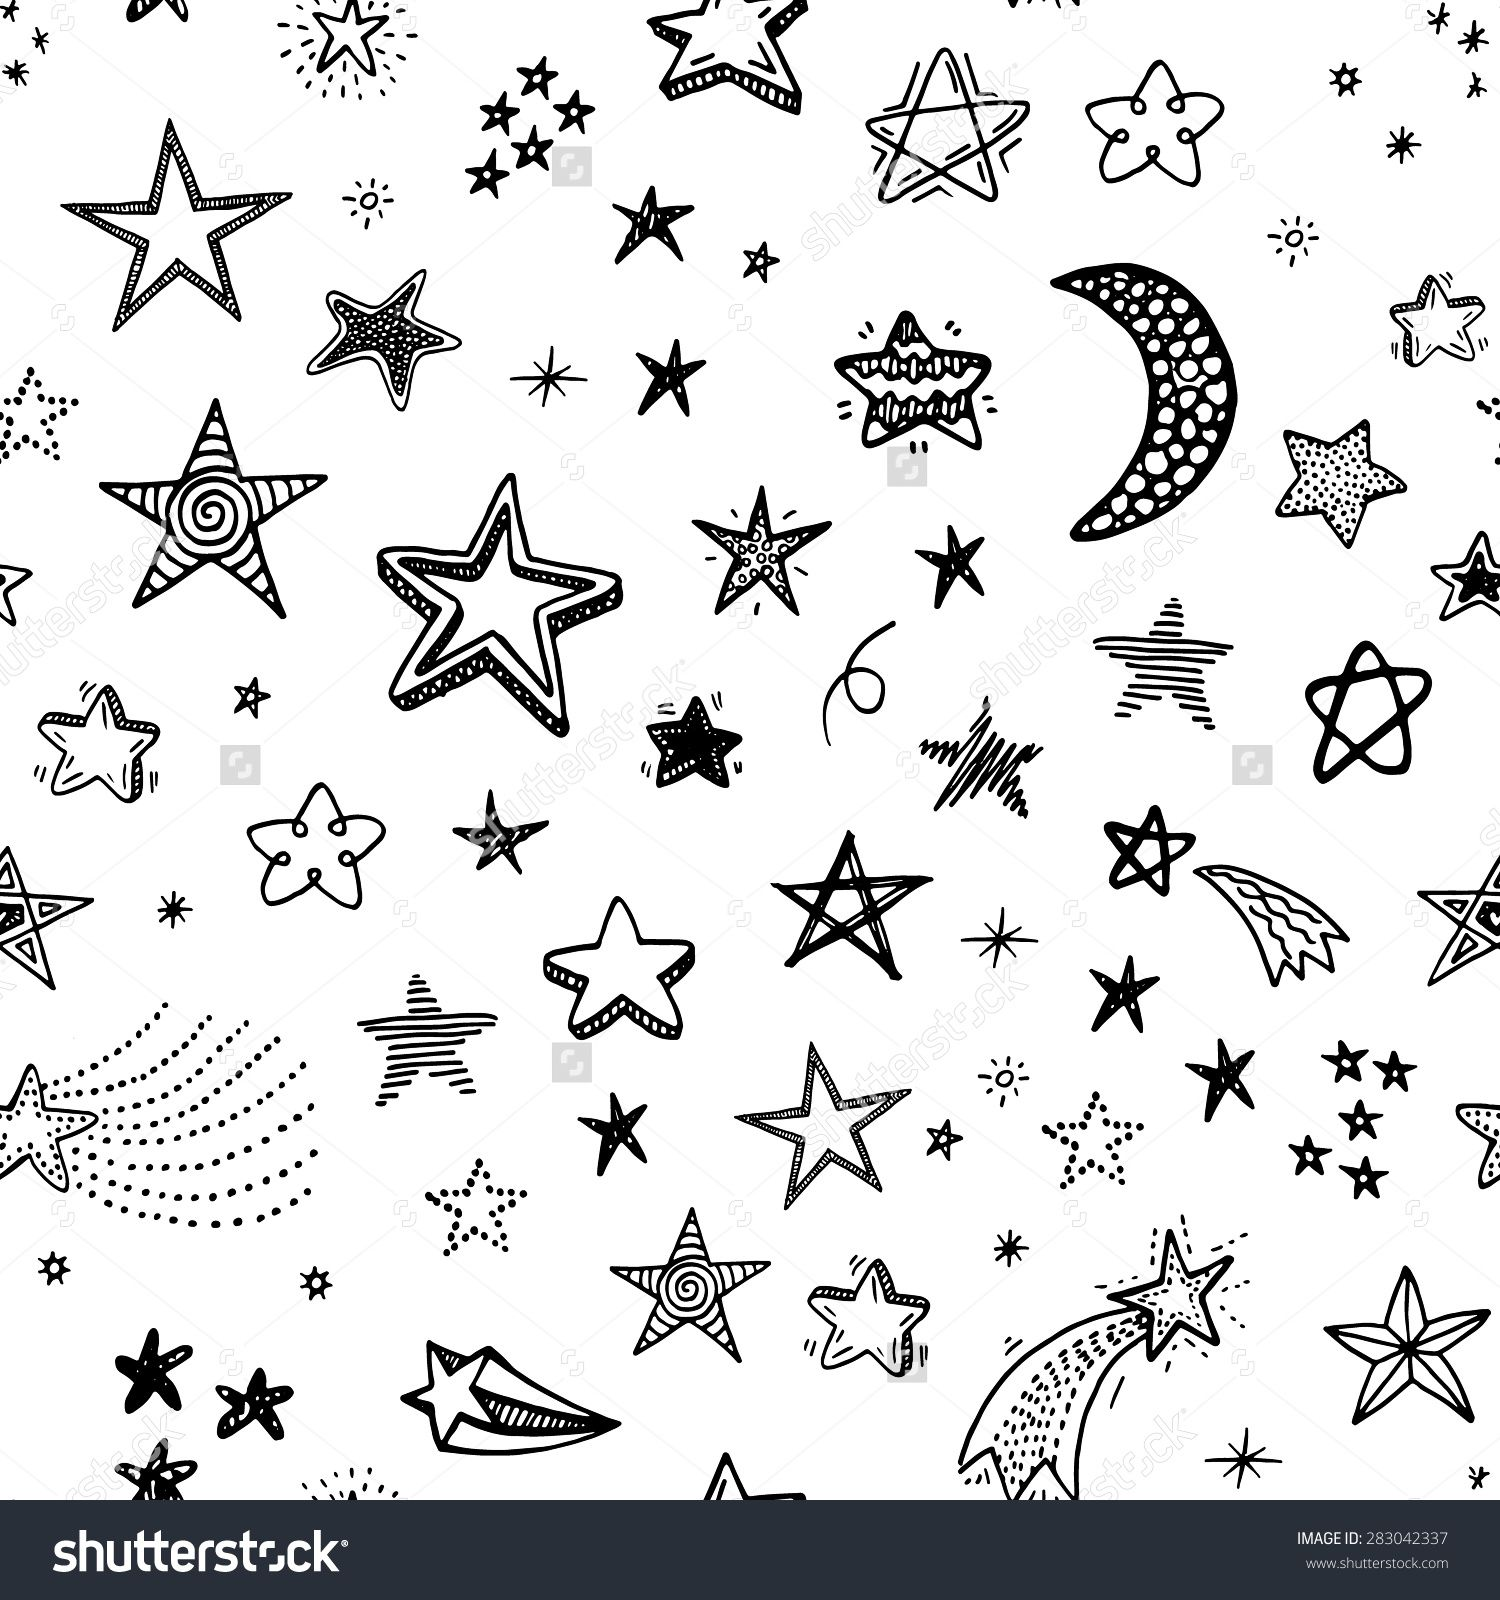 I Remember Drawing Those Easy Shooting Stars